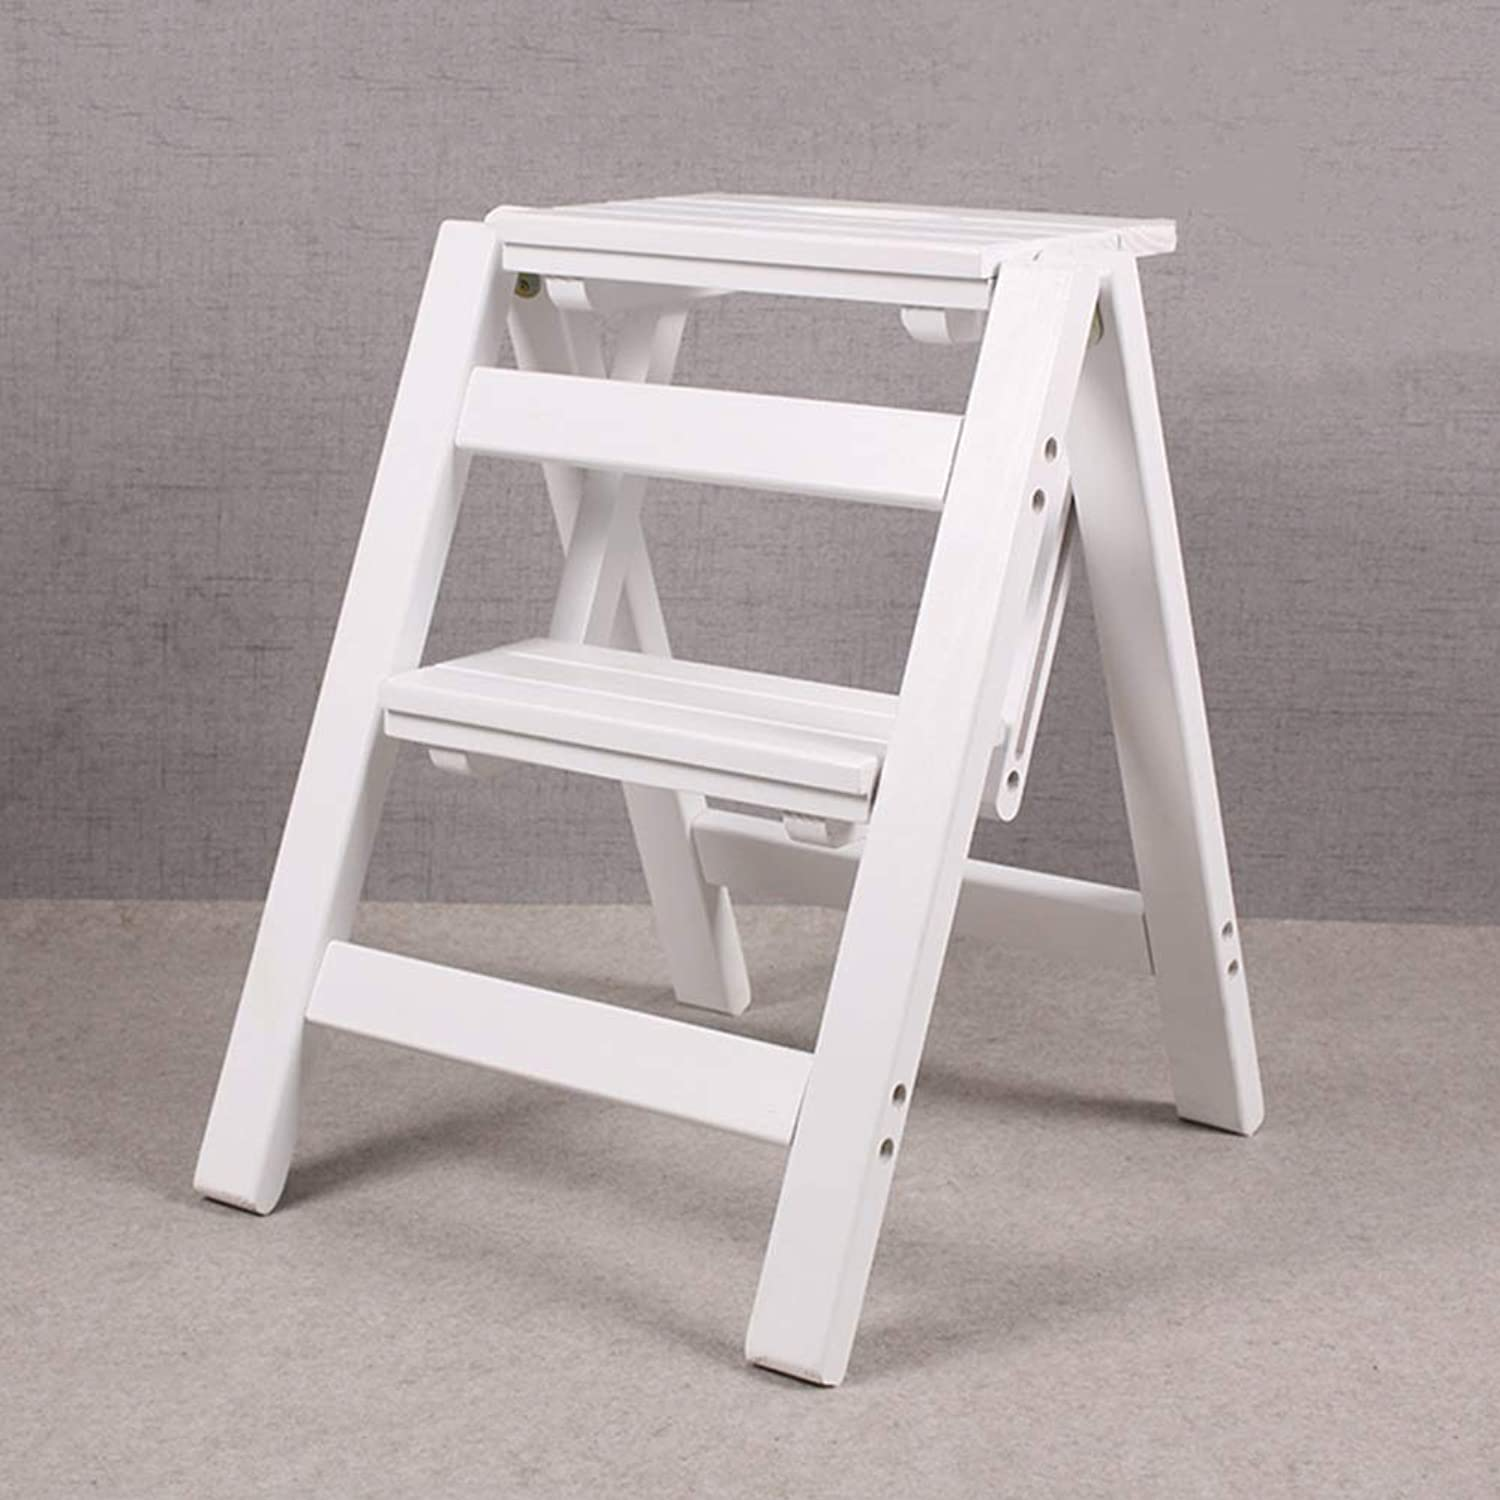 ZHAOYONGLI Stool Folding Ladder Solid Wood Step Stool Household Small Wooden Ladder Portable Folding Stool Creative Solid Durable Long Lasting (color   White, Size   2-Step Ladder)